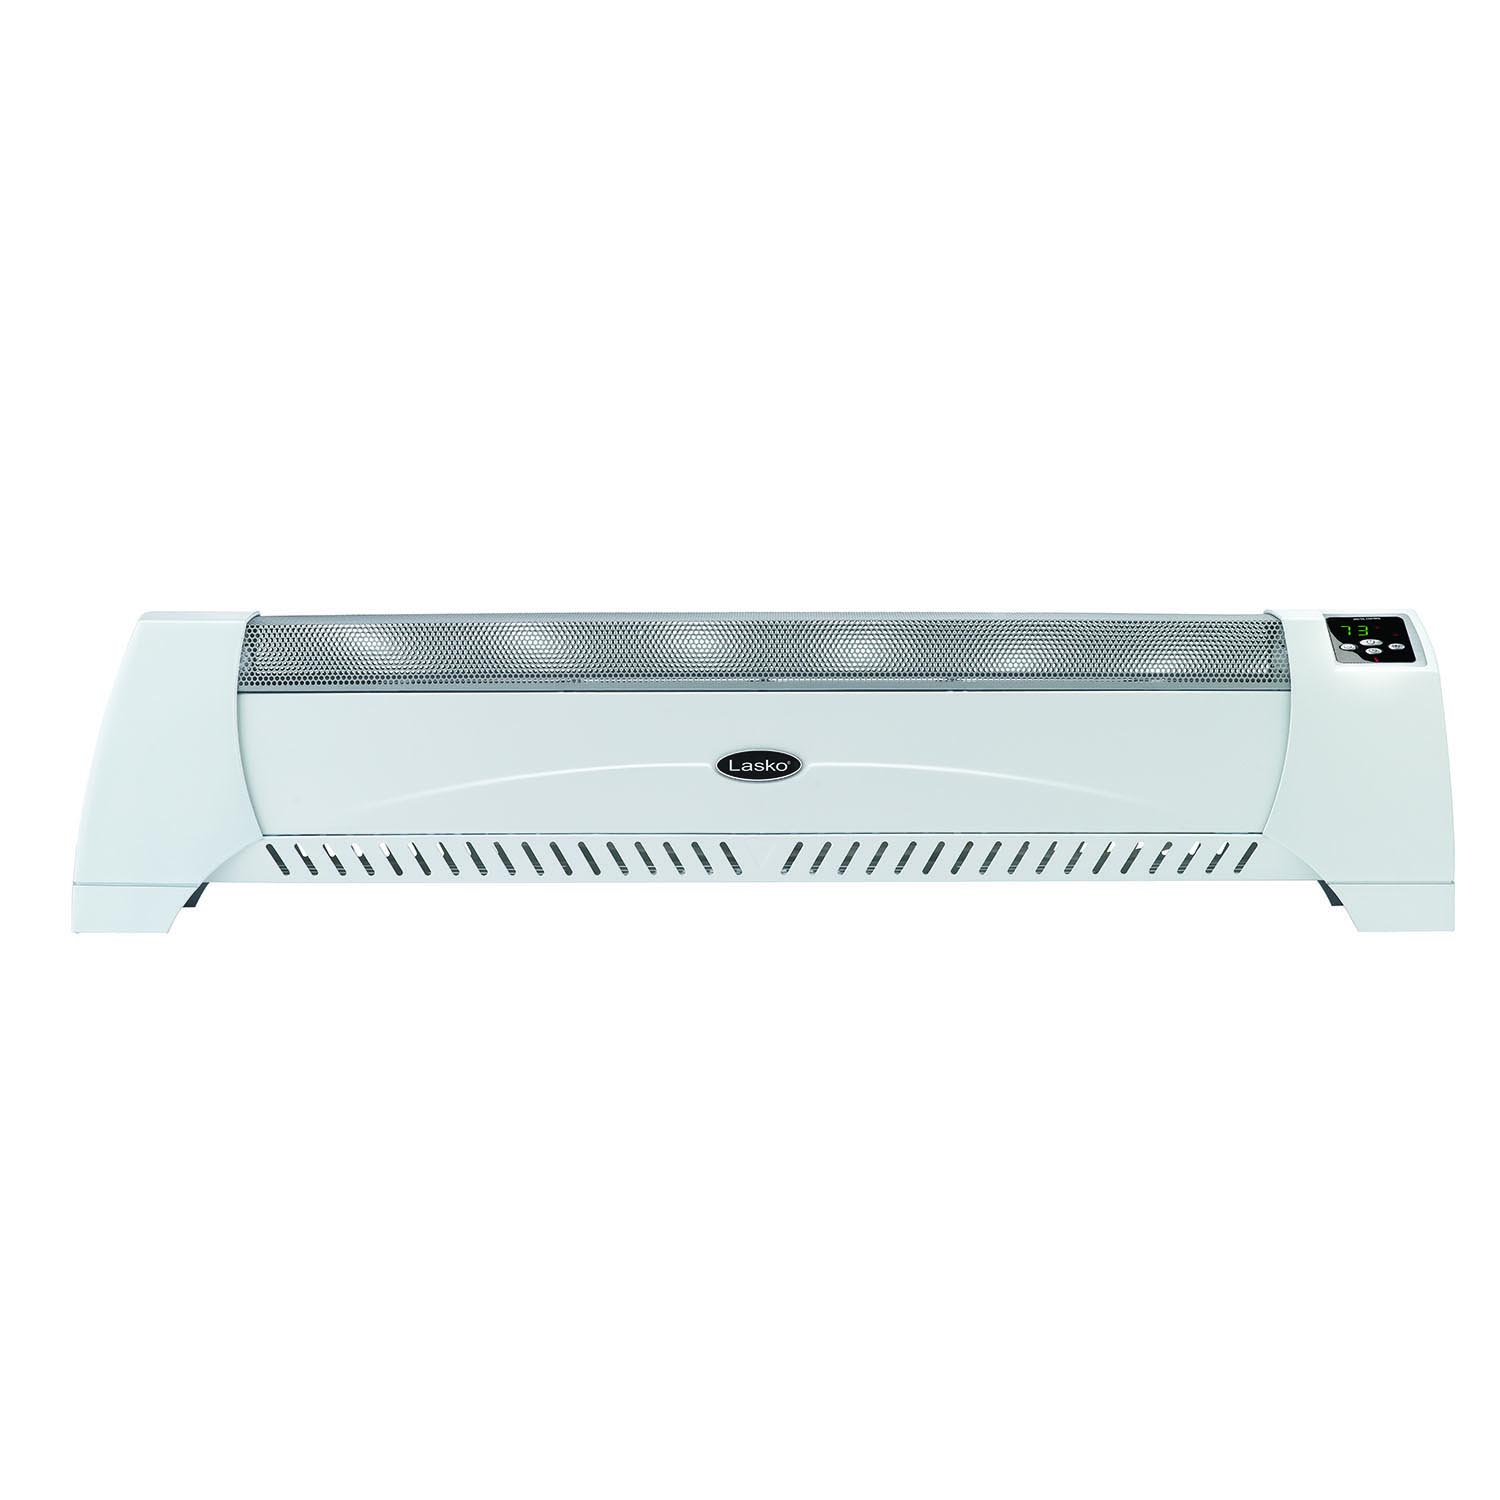 Lasko Silent Heater with Digital Display, White